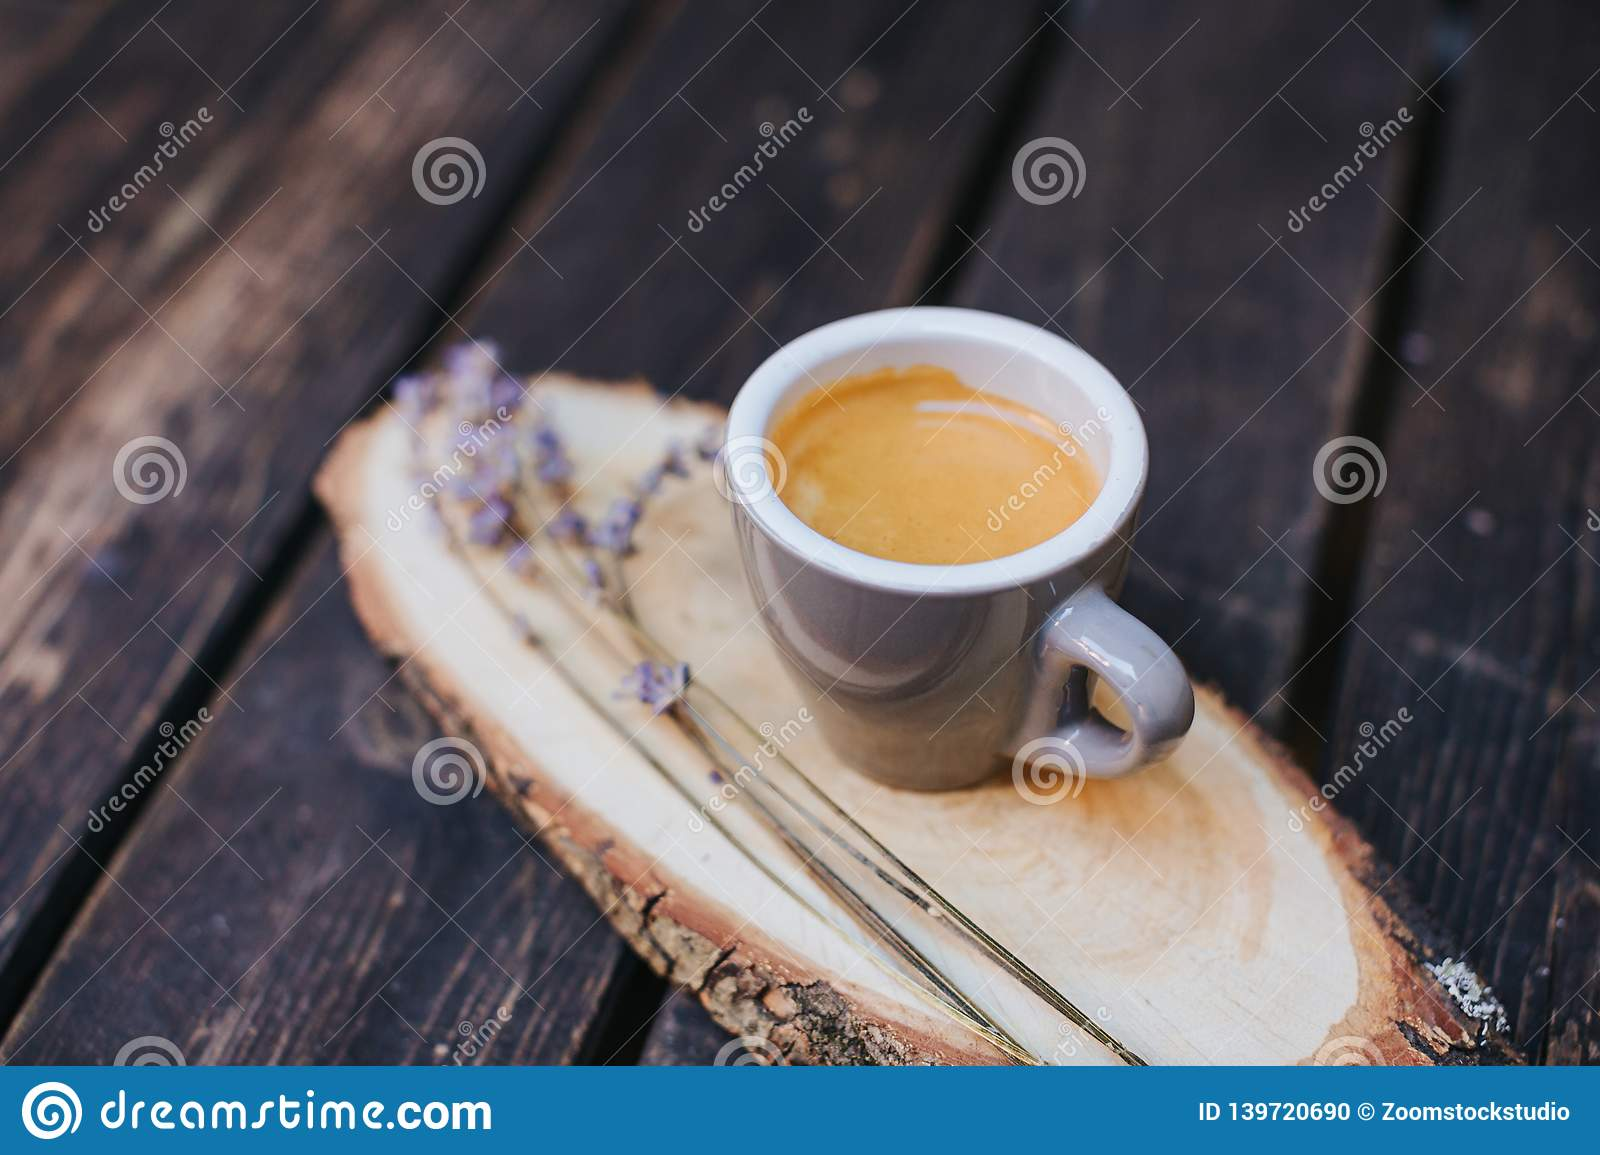 Coffee cup on table. Cup of hot latte coffee in the relaxing time. cup of coffee on wooden. Lavender. Aroma of lavender. Aroma of